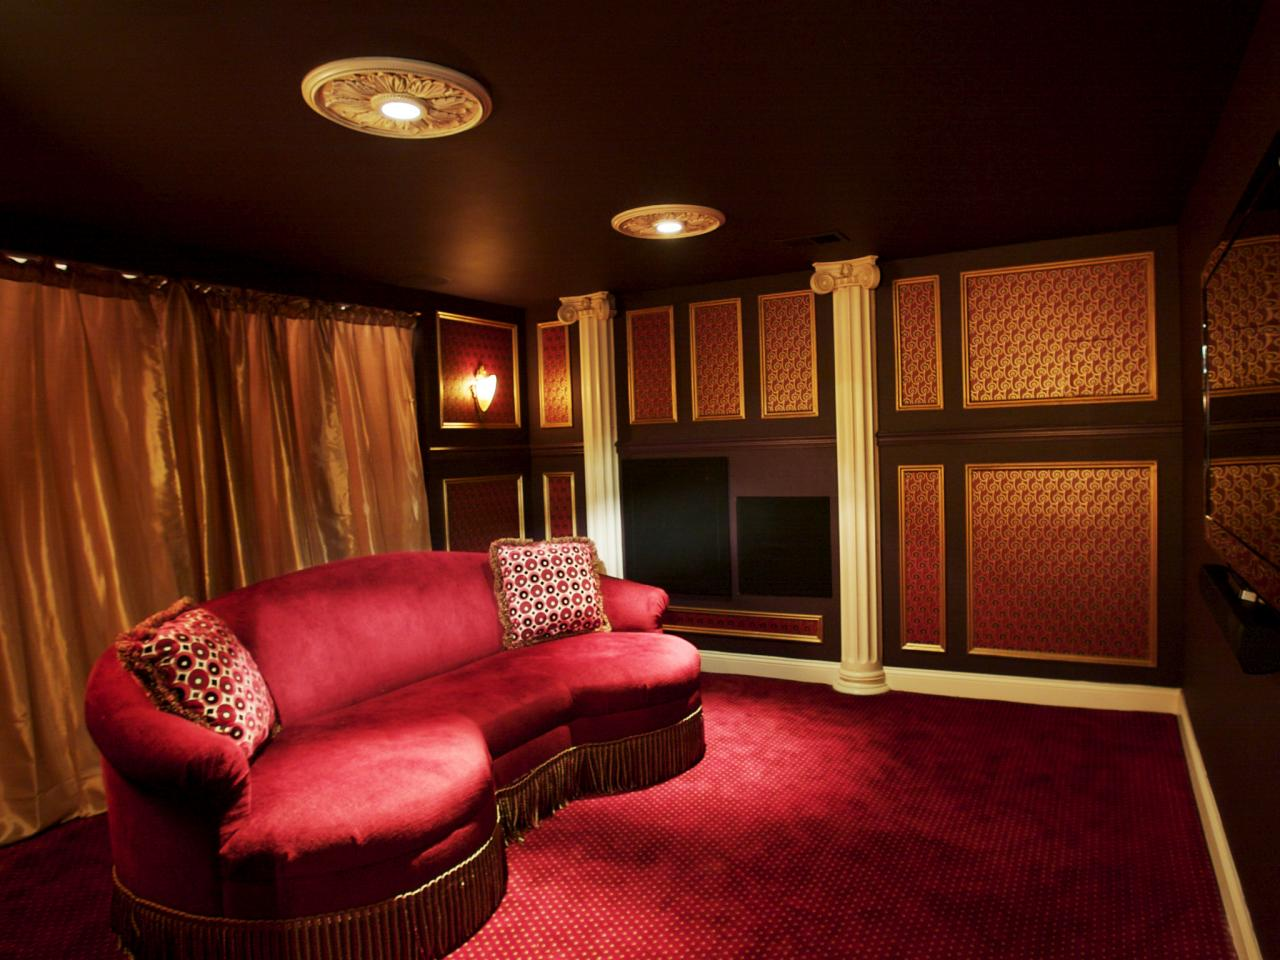 that way you can get the right vibe of the movie theater in your home